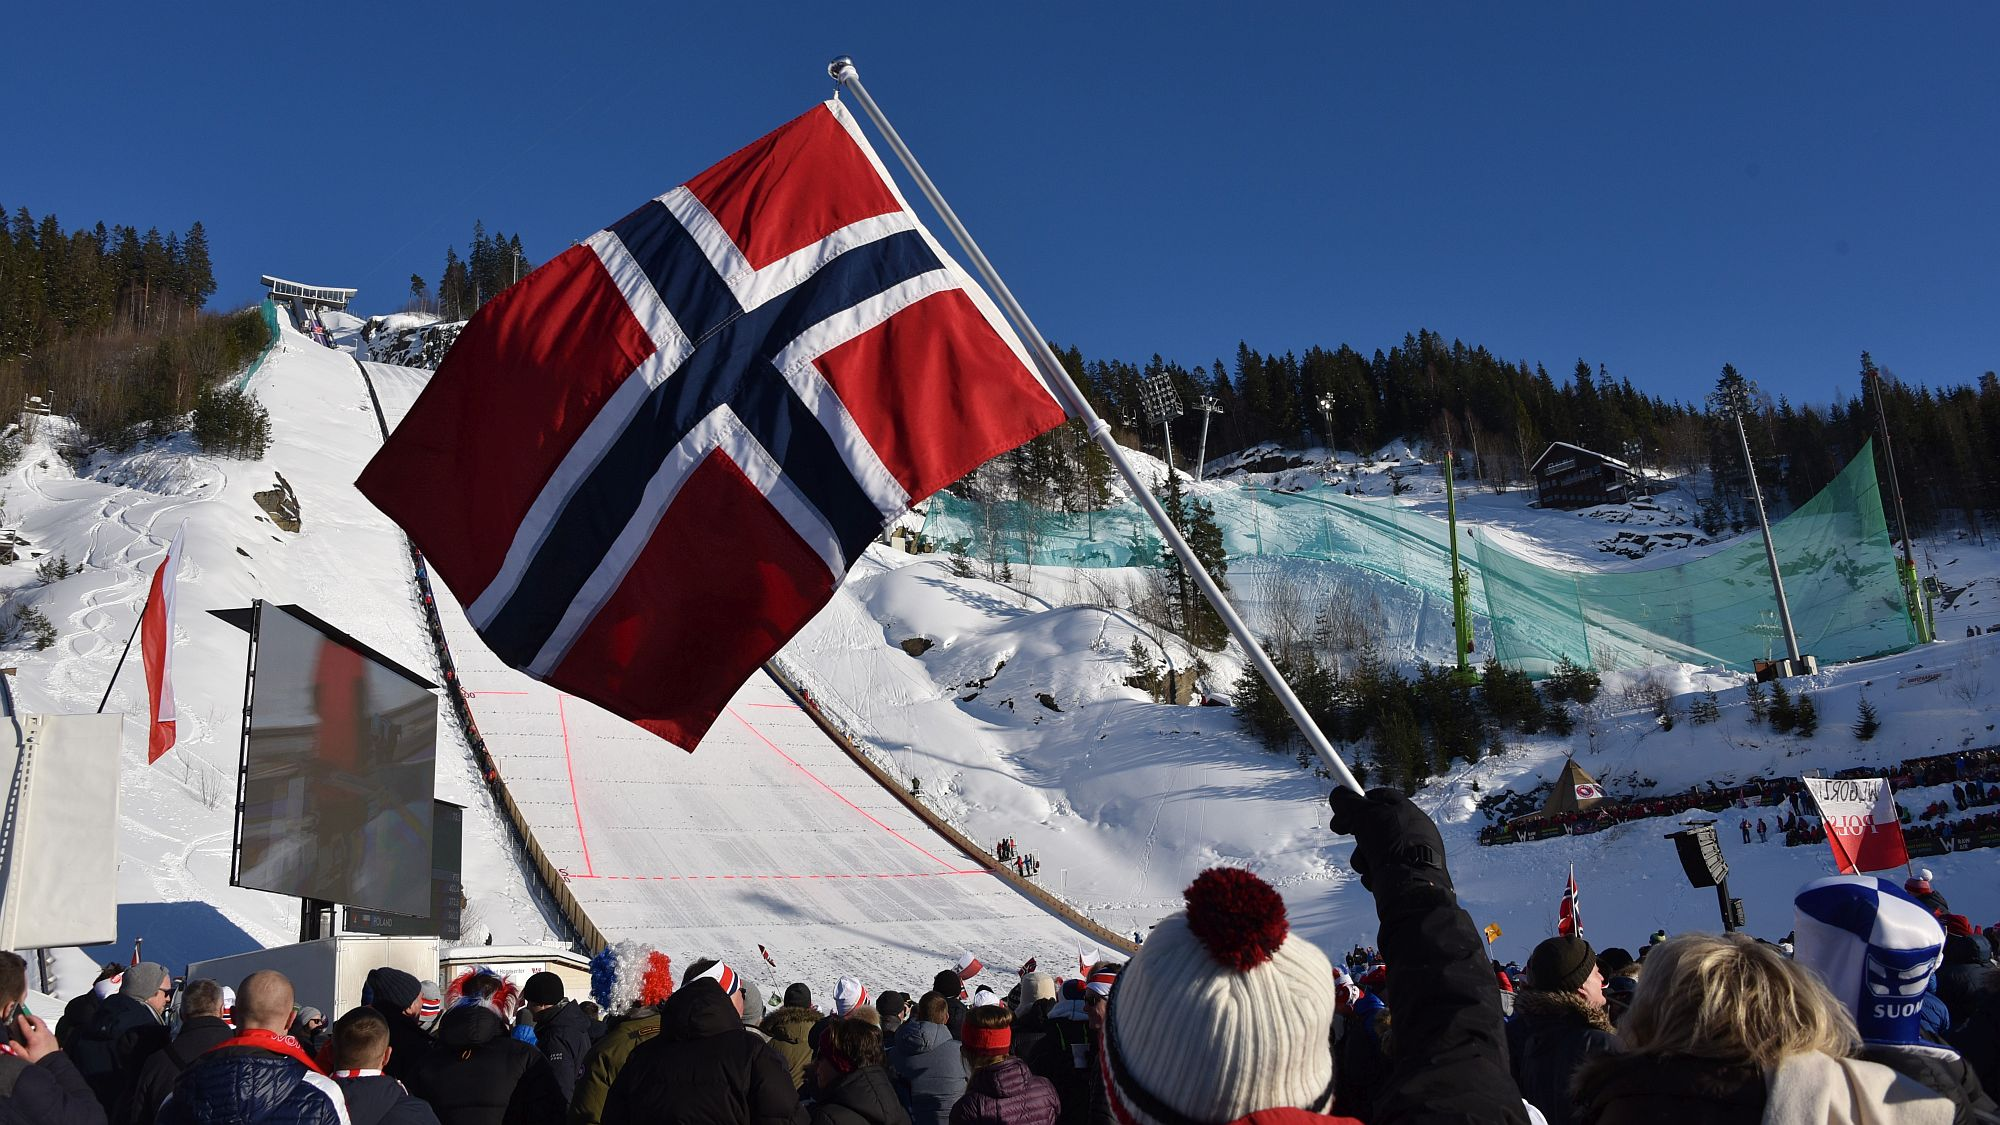 Vikersund Monsterbakken